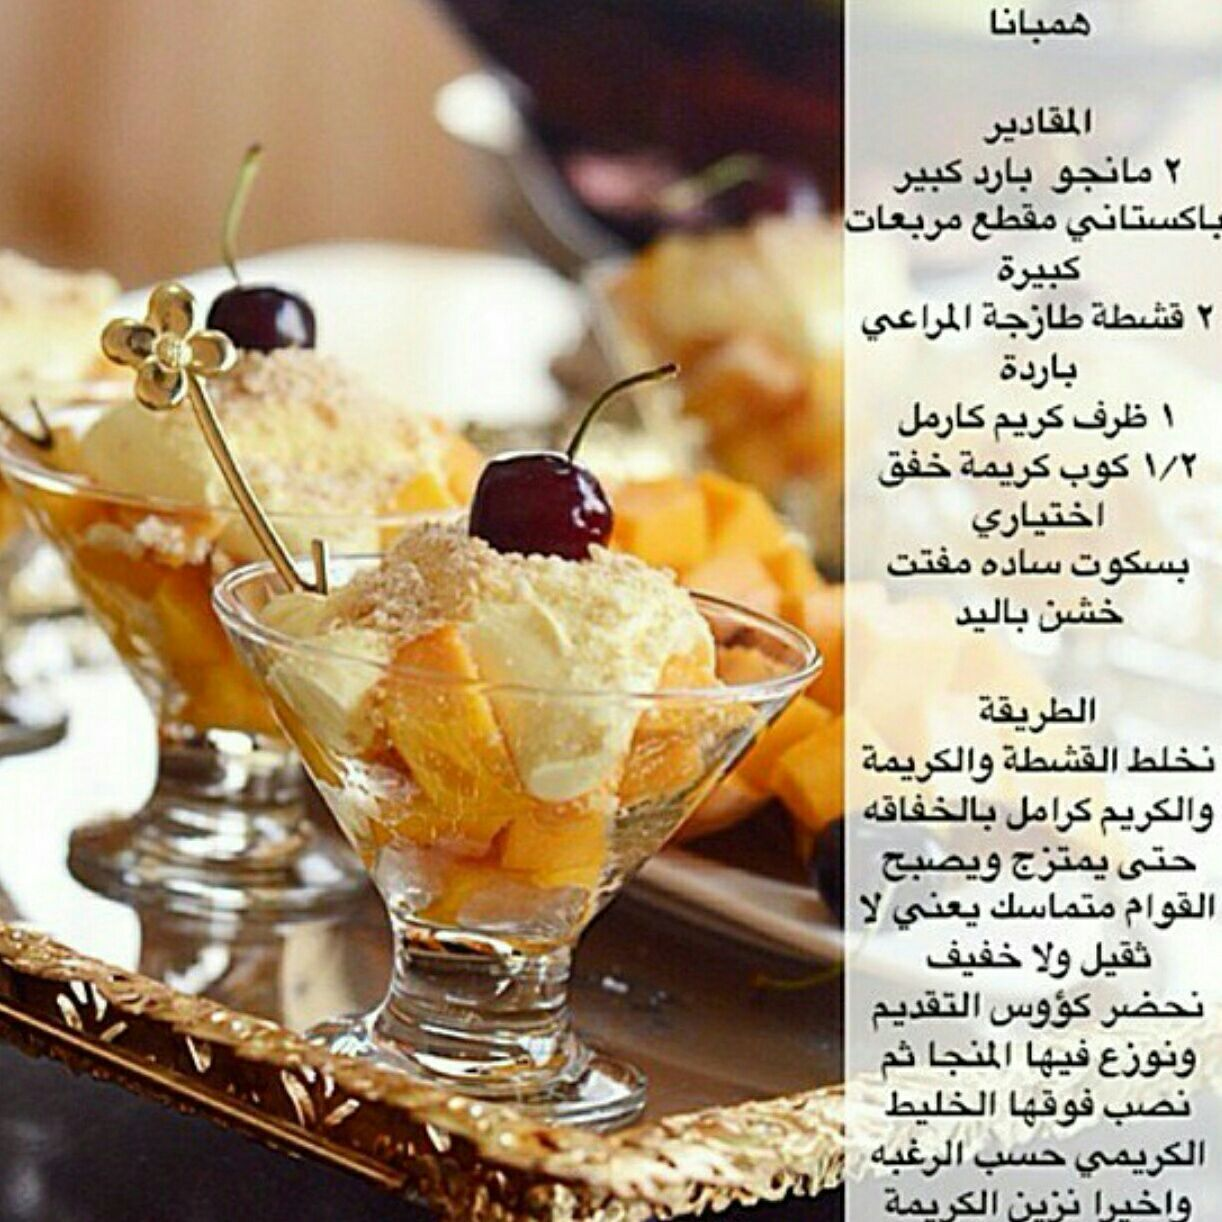 Pin By Sara Sultan On سويتات Discover Food Arabic Dessert Food And Drink